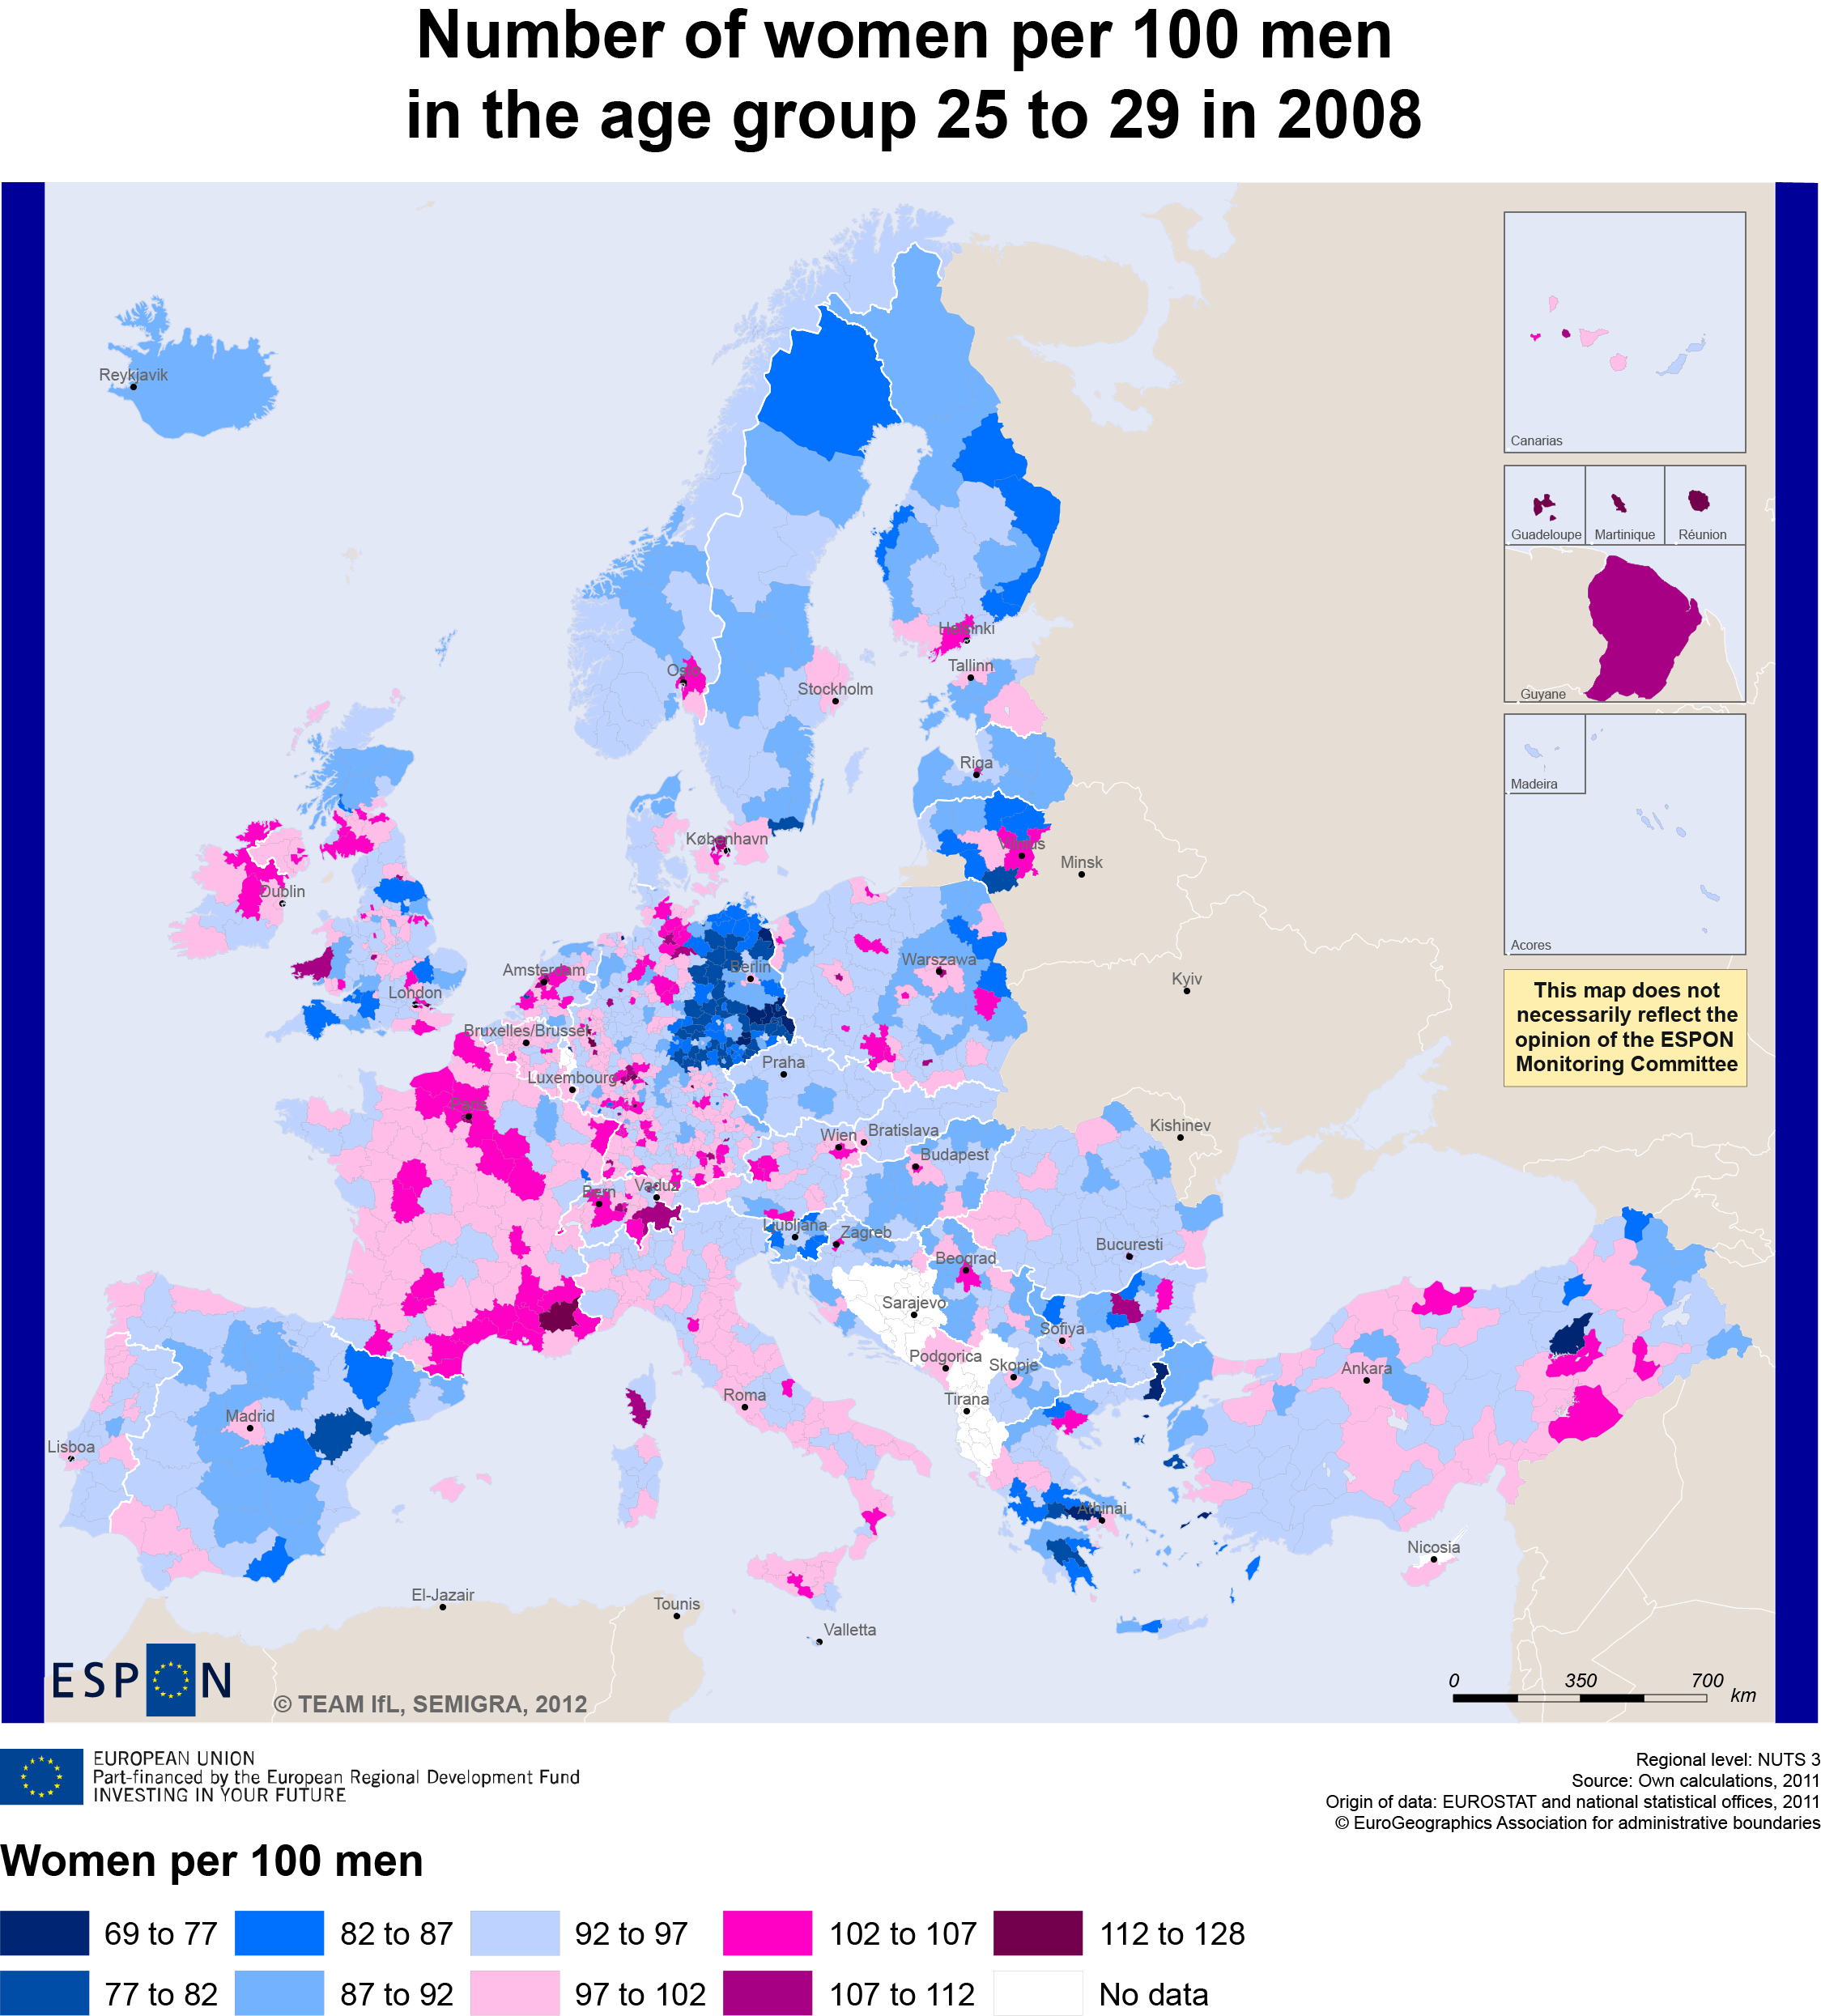 Number of women per 100 men in the age group 25 to 29 in 2008